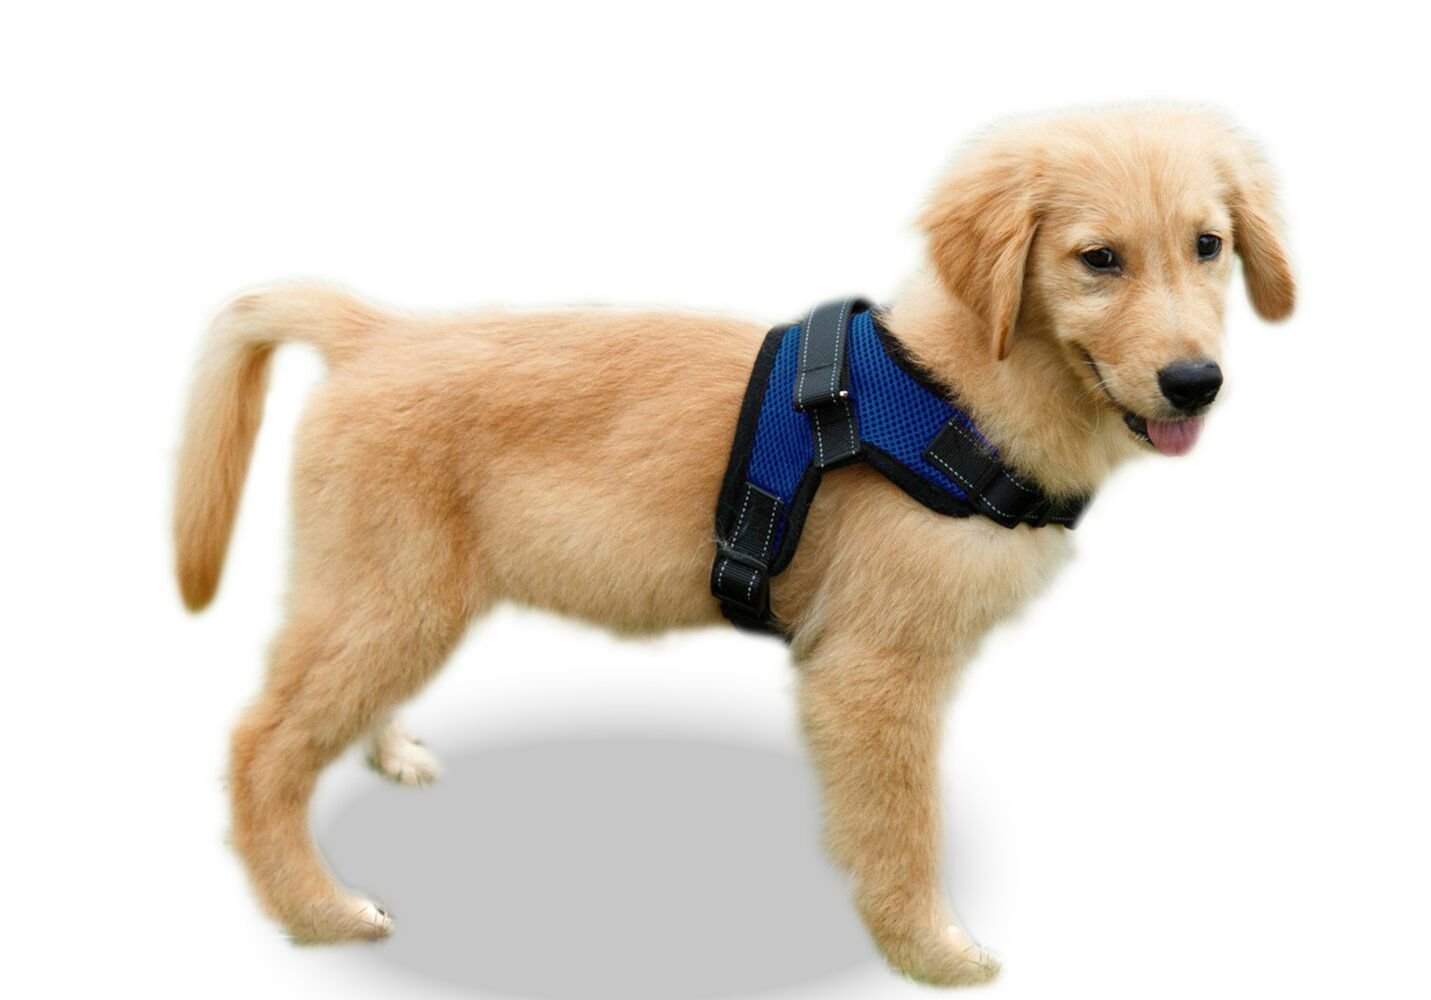 Copatchy No Pull Adjustable Reflective Dog Harness with Handle (Small, Blue) by Copatchy